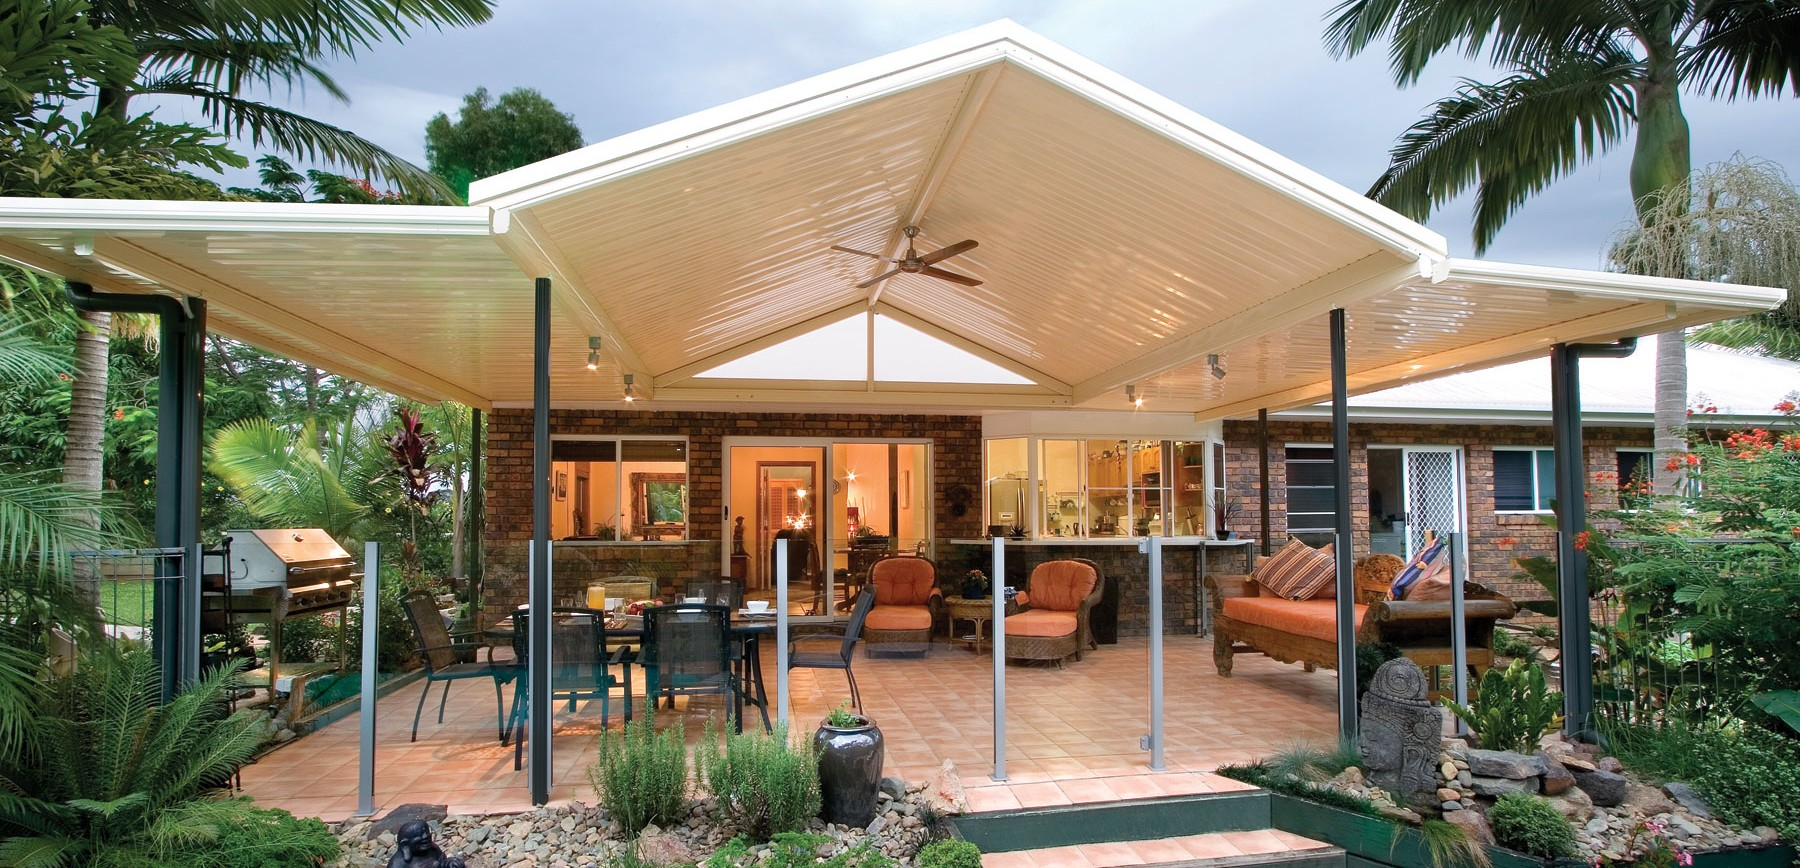 Build A Garden Trellis Multispan Gable Melbourne Stratco Geelong Verandah